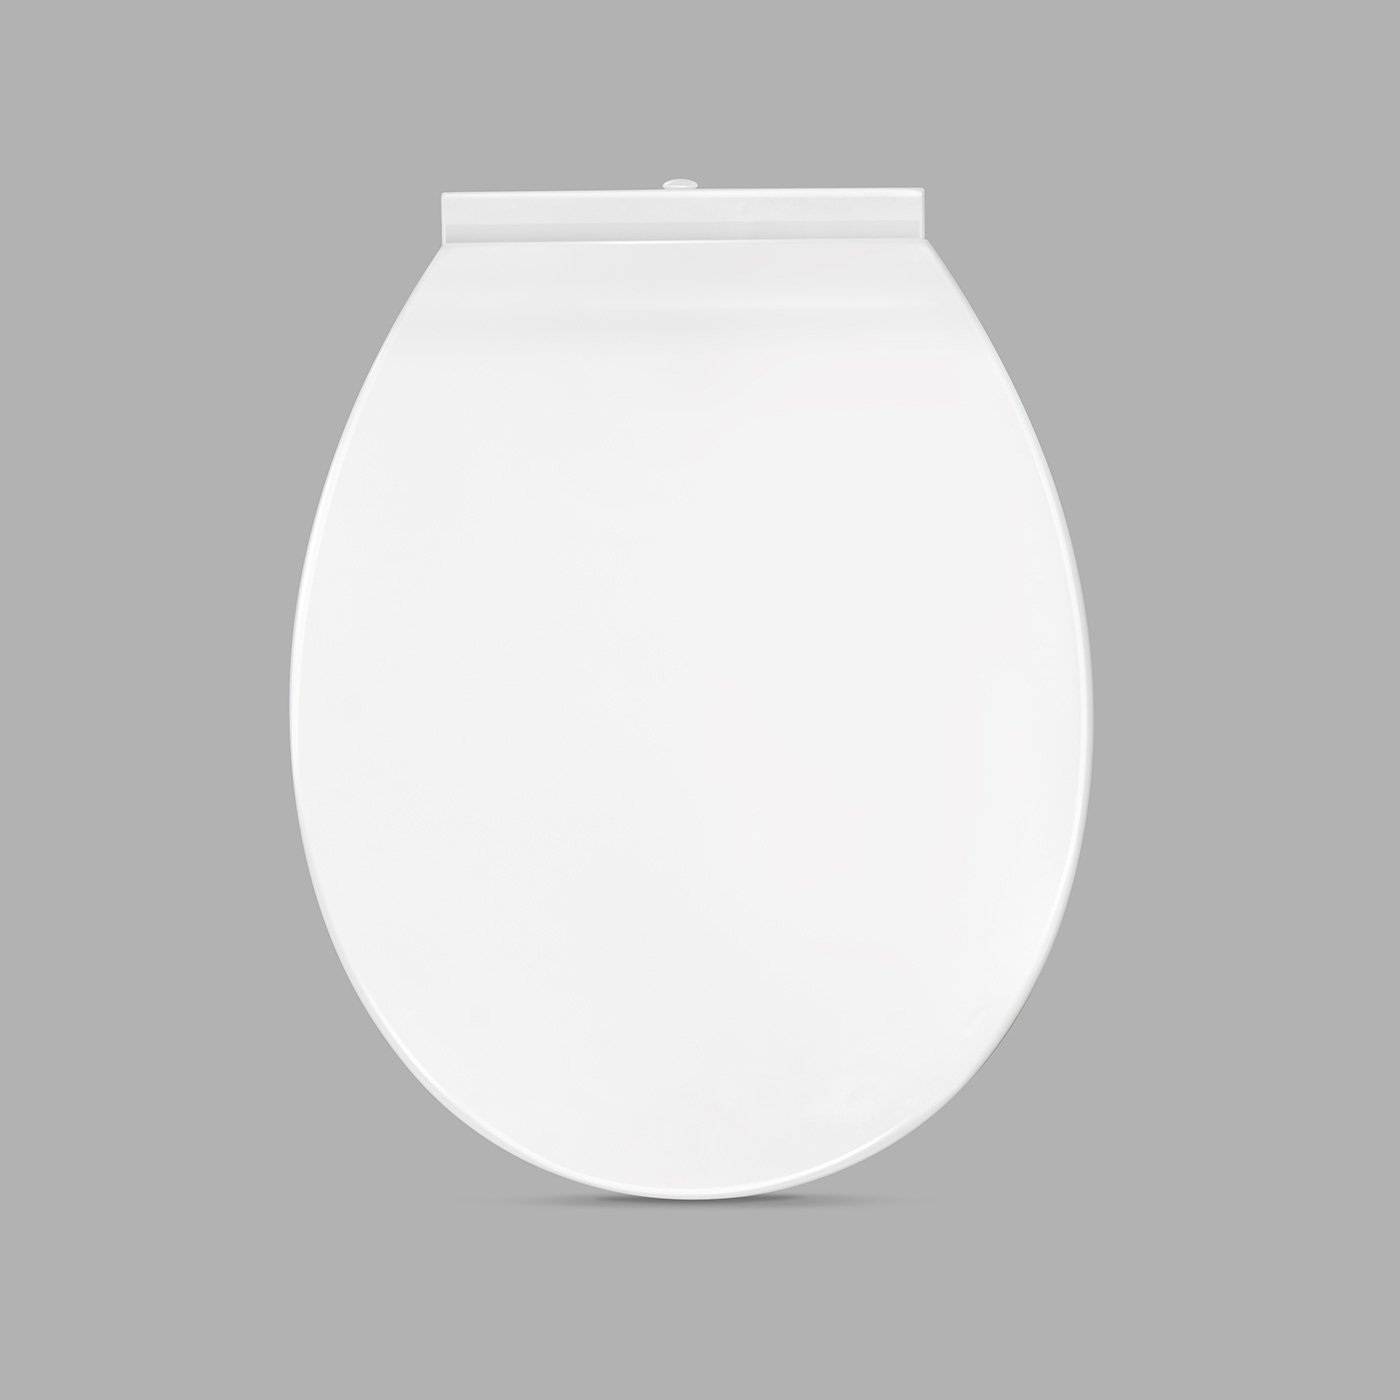 Modern Bathroom Curved White Soft Close Durable Toilet Seat CL624SEAT iBathUK